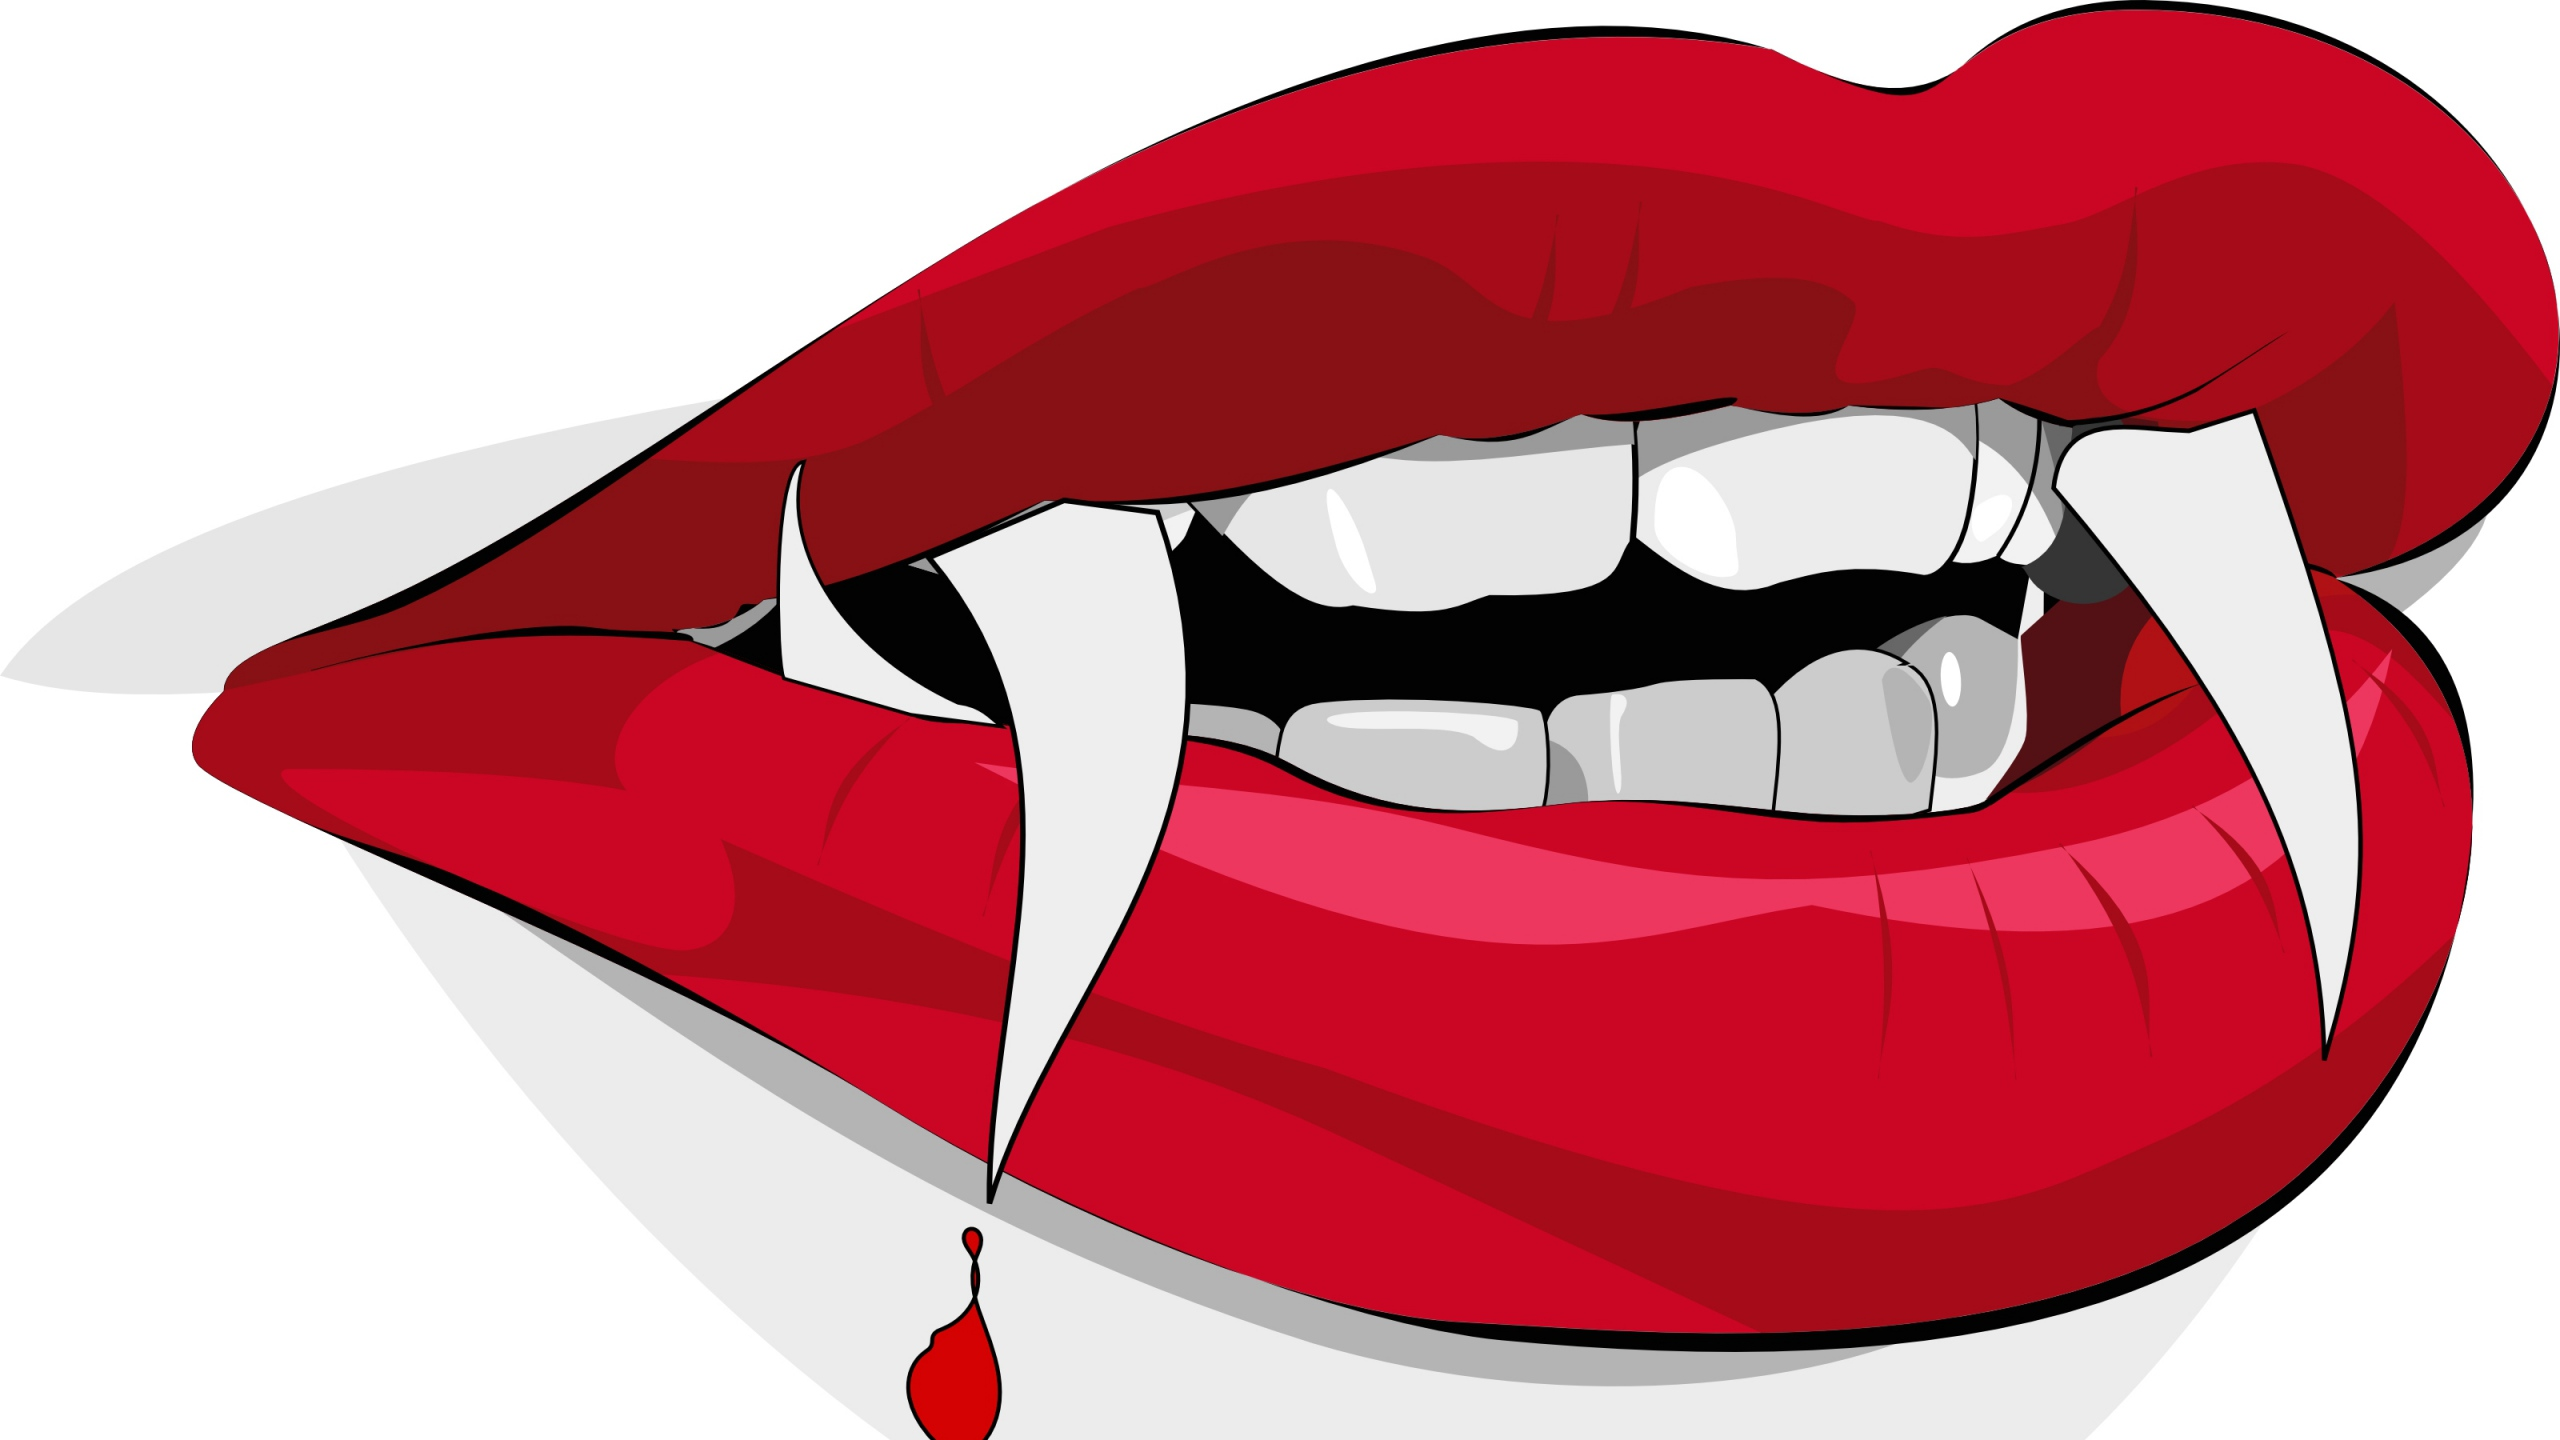 Spooky clipart mouth. Wallpapers download wallpaper x